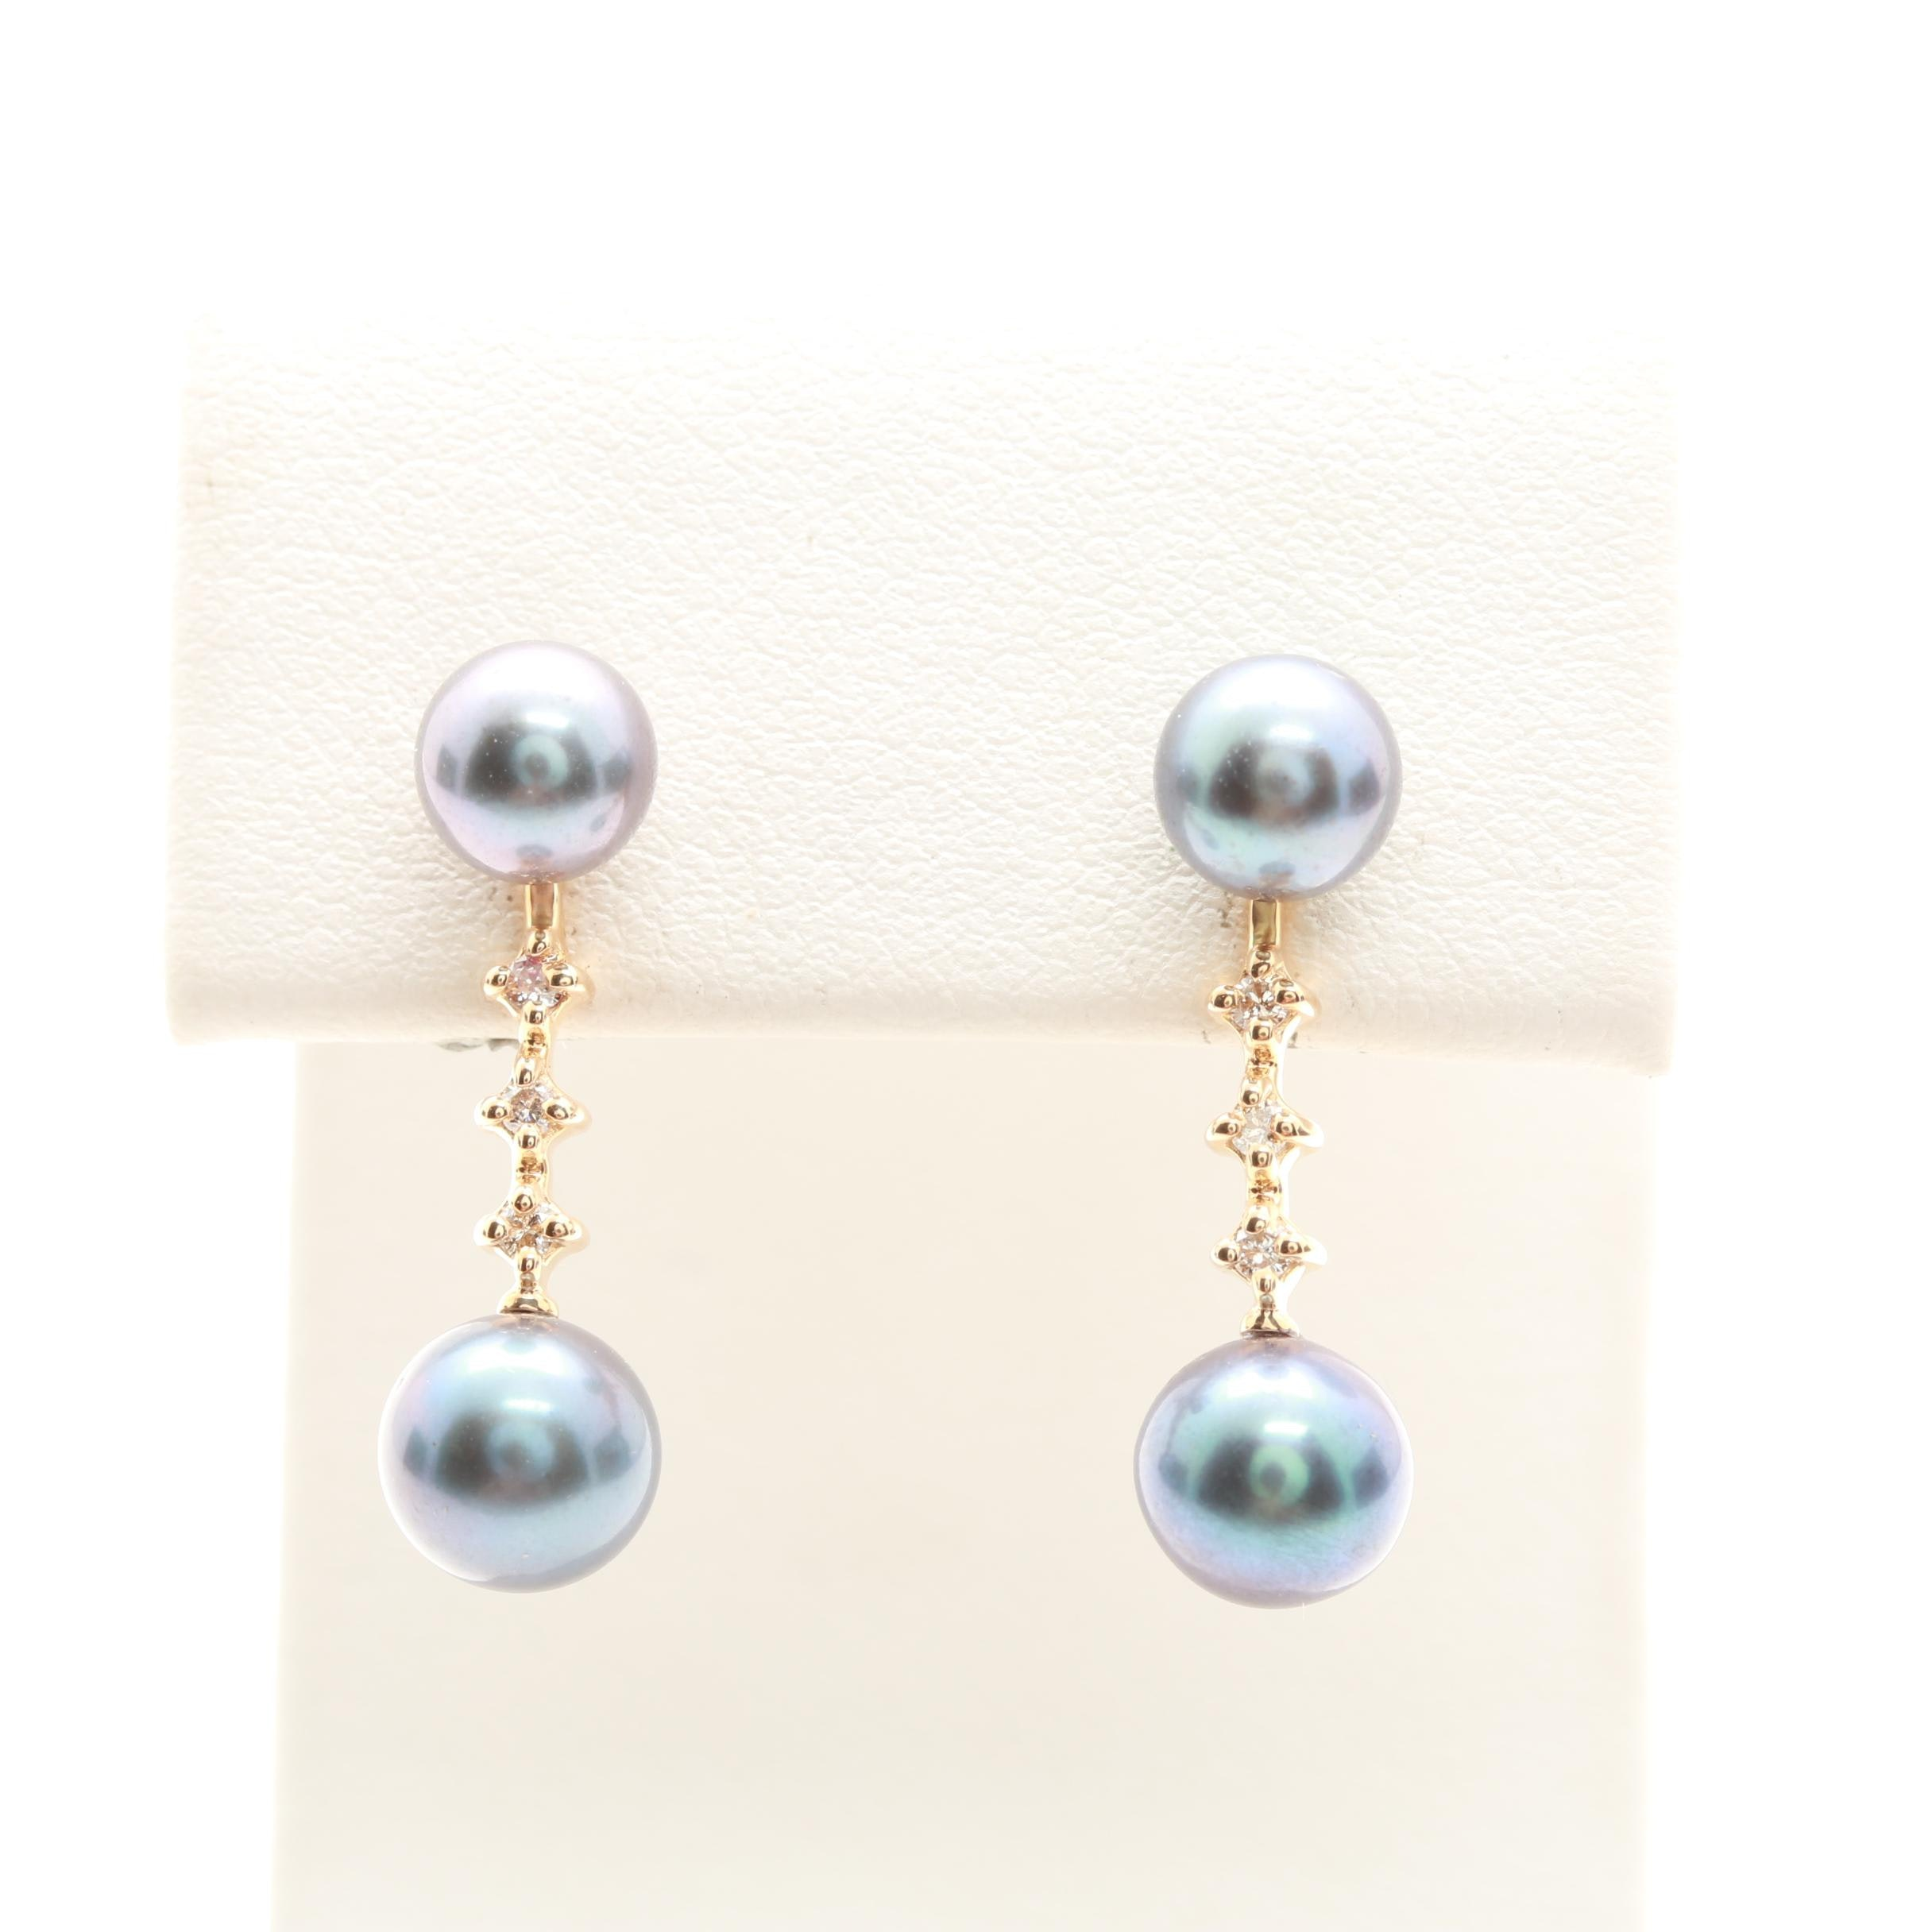 14K Yellow Gold Cultured Pearl and Diamond Earrings with Enhancers